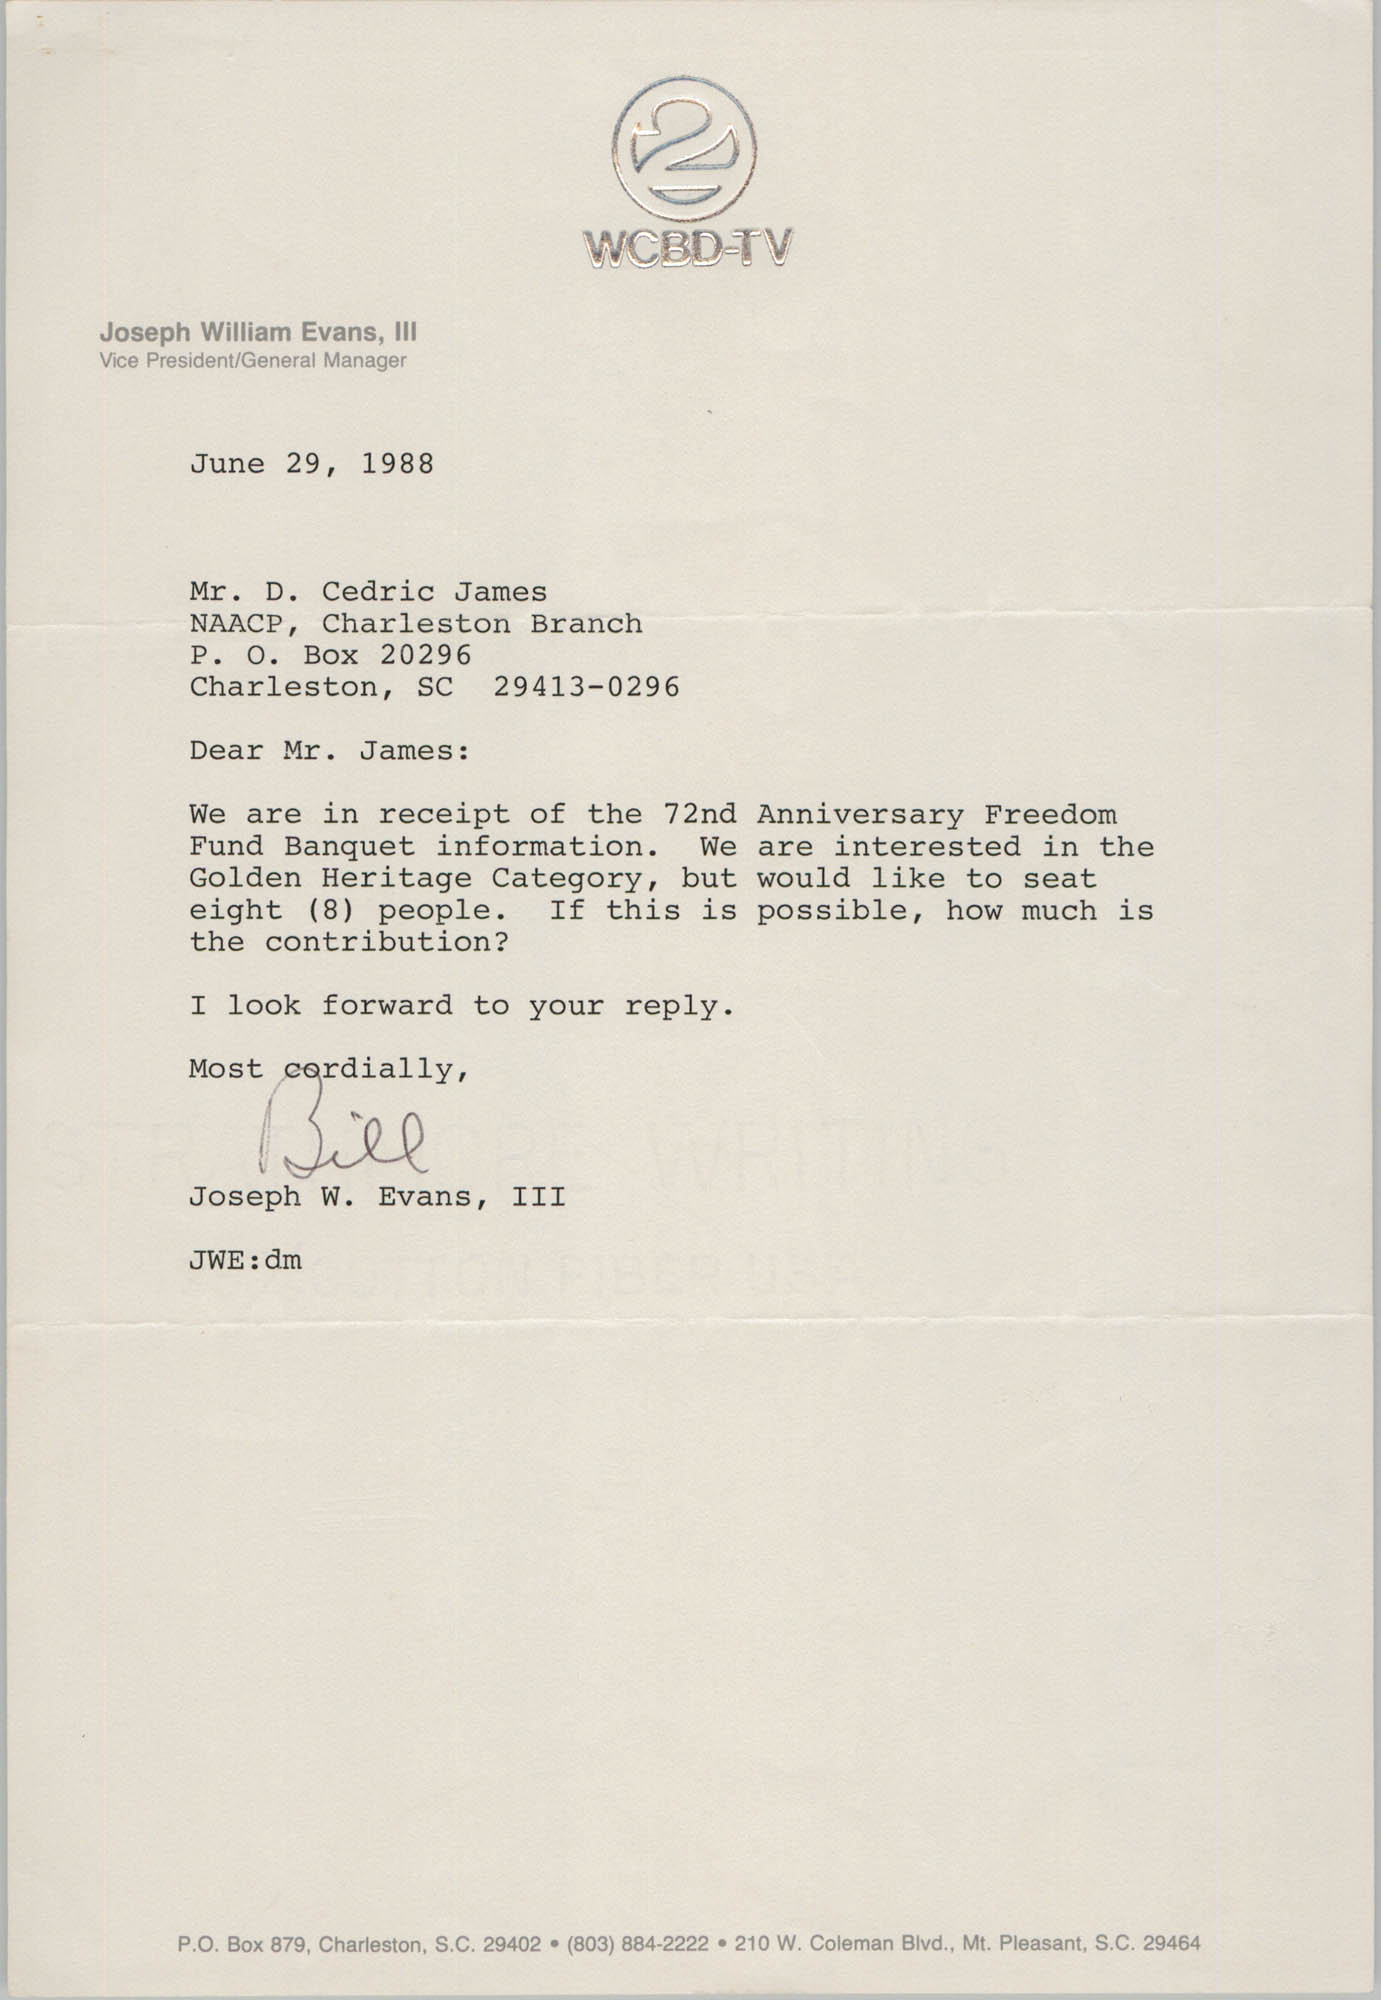 Letter from Joseph W. Evans, III to D. Cedric James, June 29, 1988